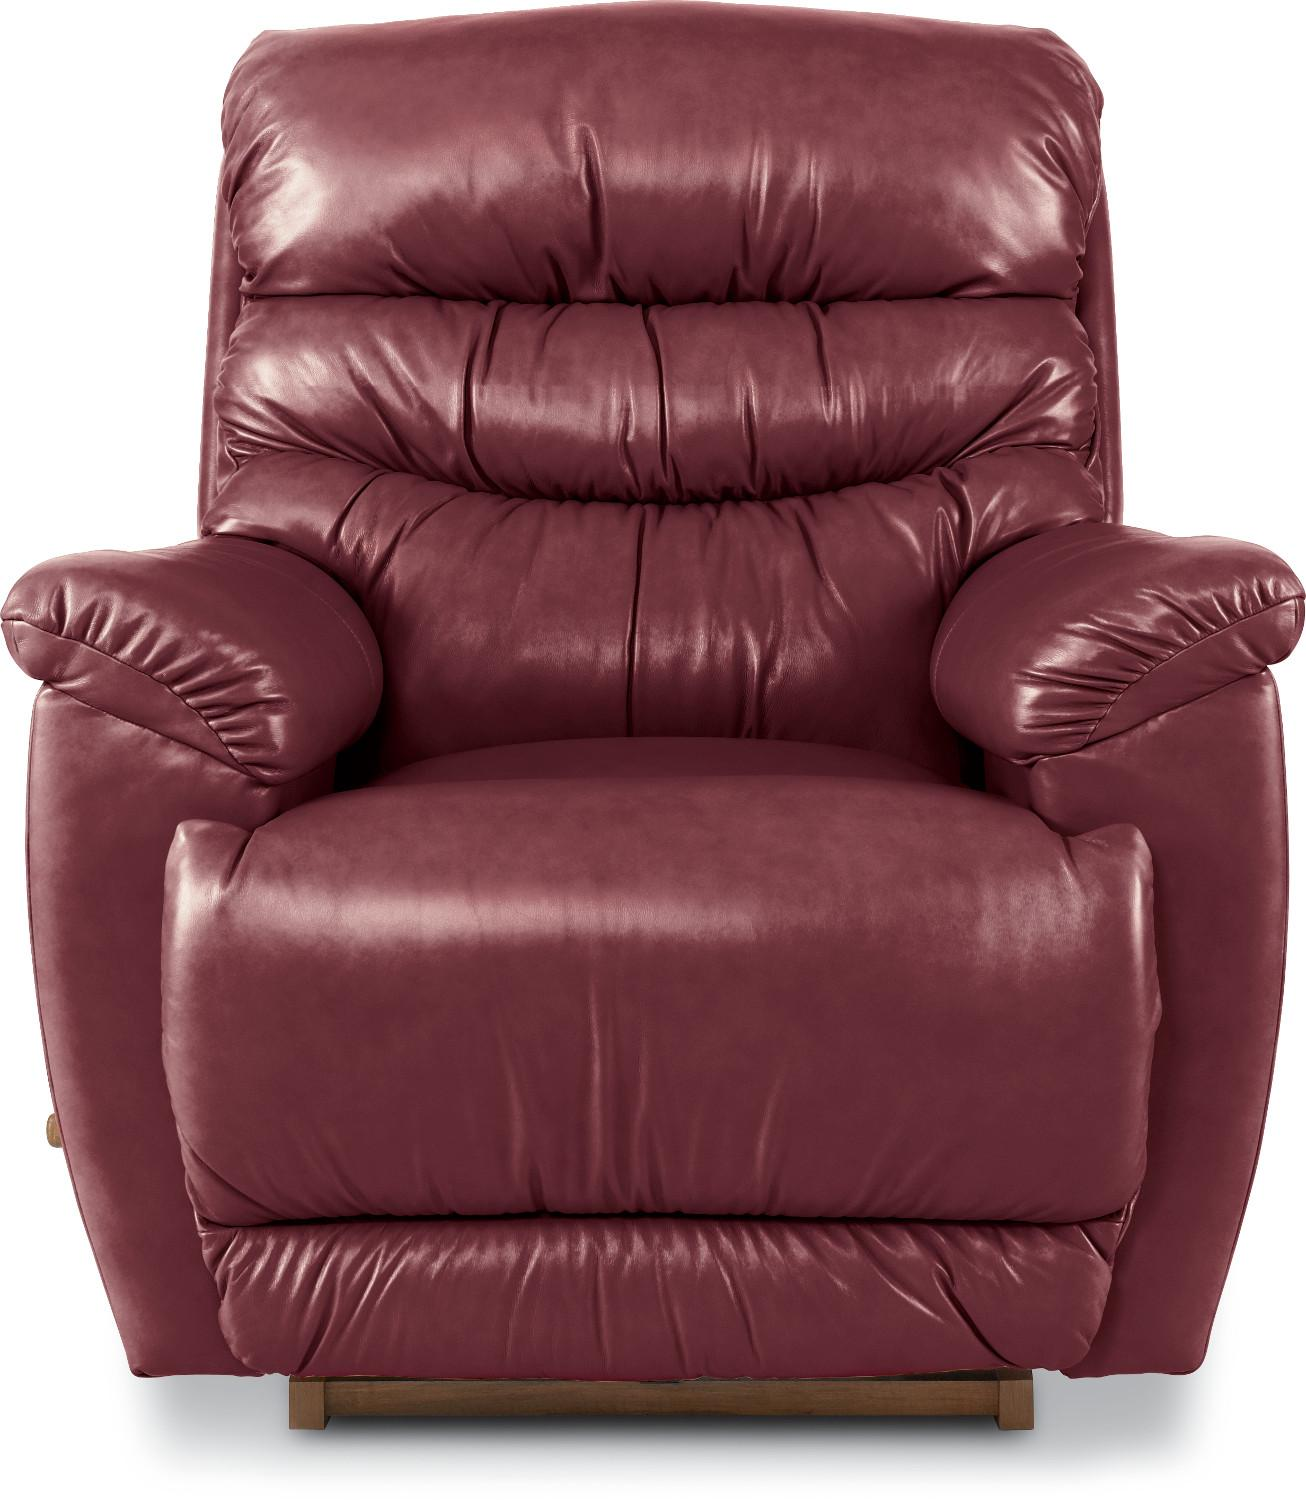 LaZBoy Recliners Joshua ReclinaRocker Reclining Chair